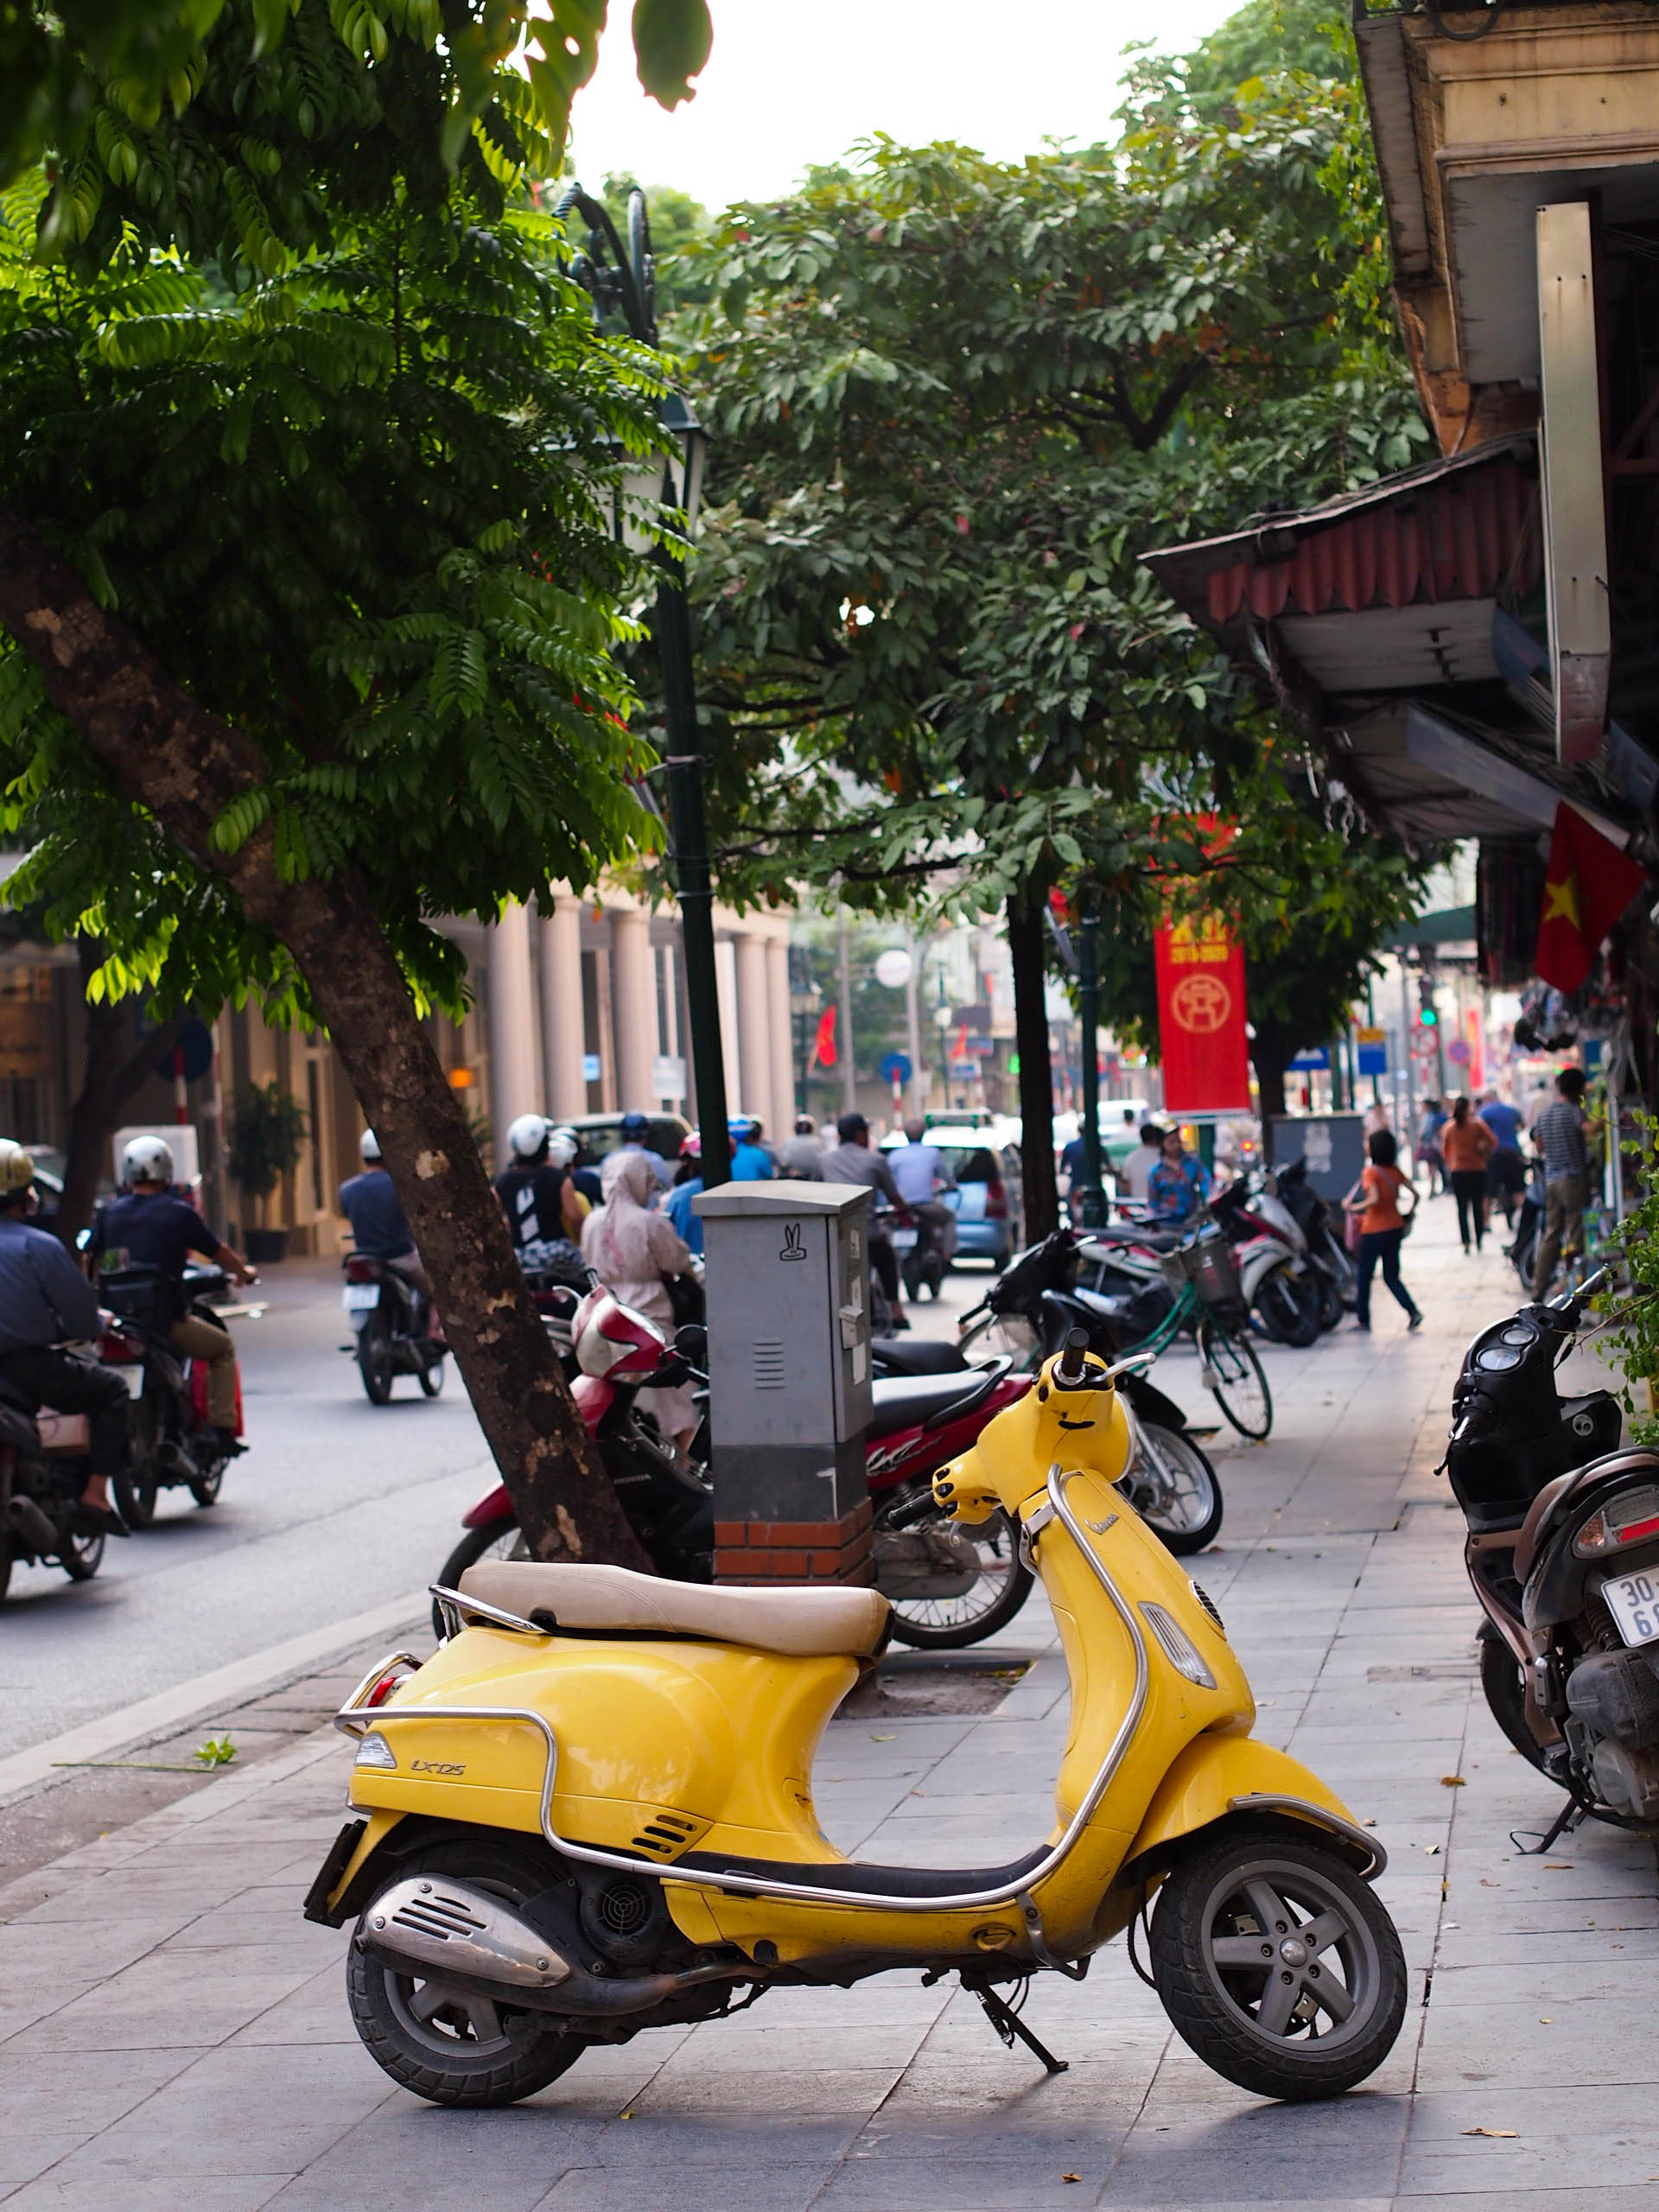 Scooters, scooters, everywhere. I still don't understand how people navigated the streets with so many scooters.